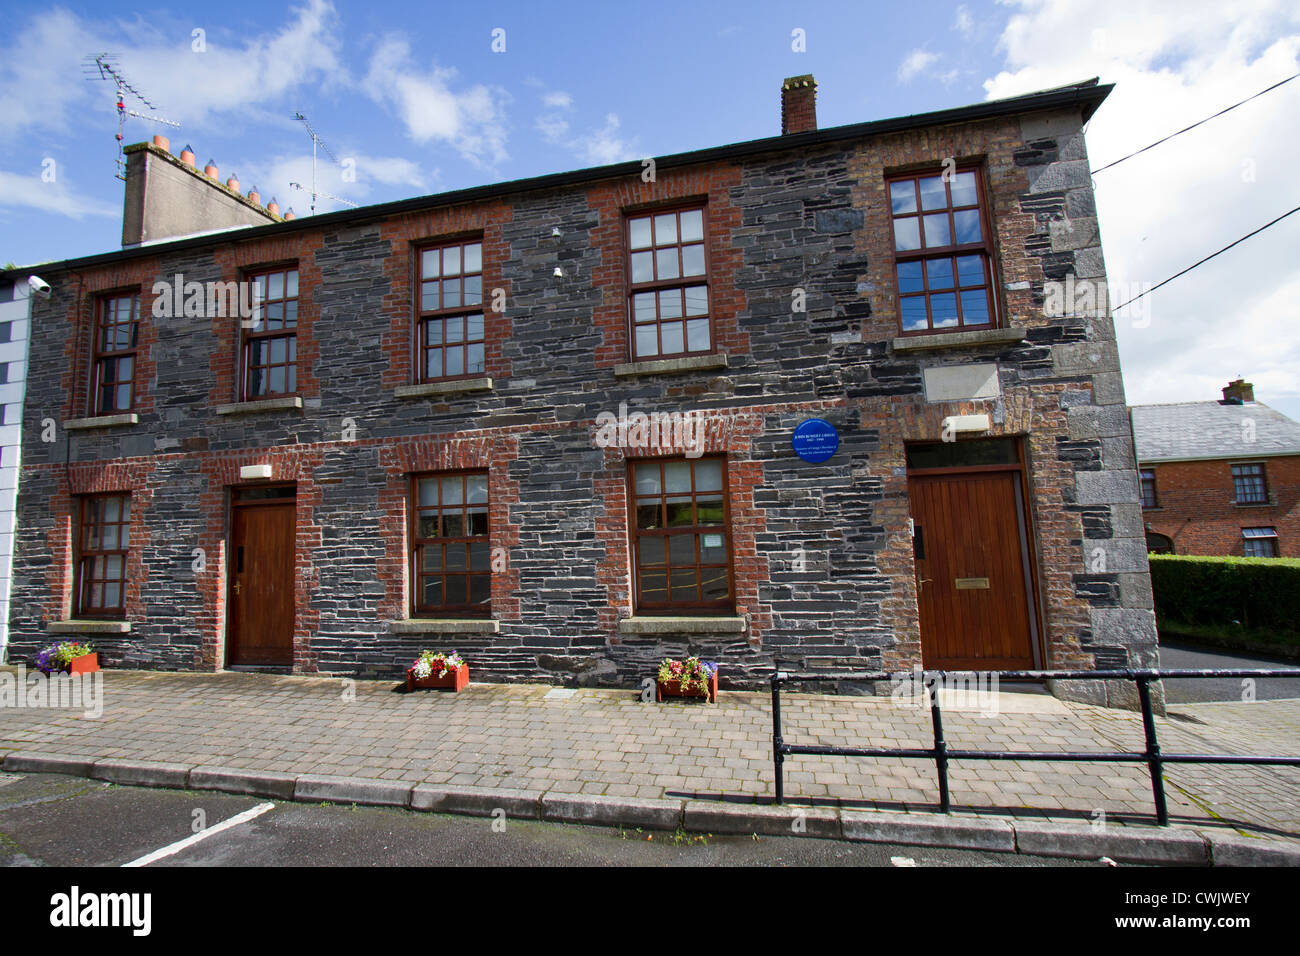 The former schoolhouse in Rockcorry, Co. Monaghan, where John Robert Gregg, the inventor of the shorthand system, - Stock Image